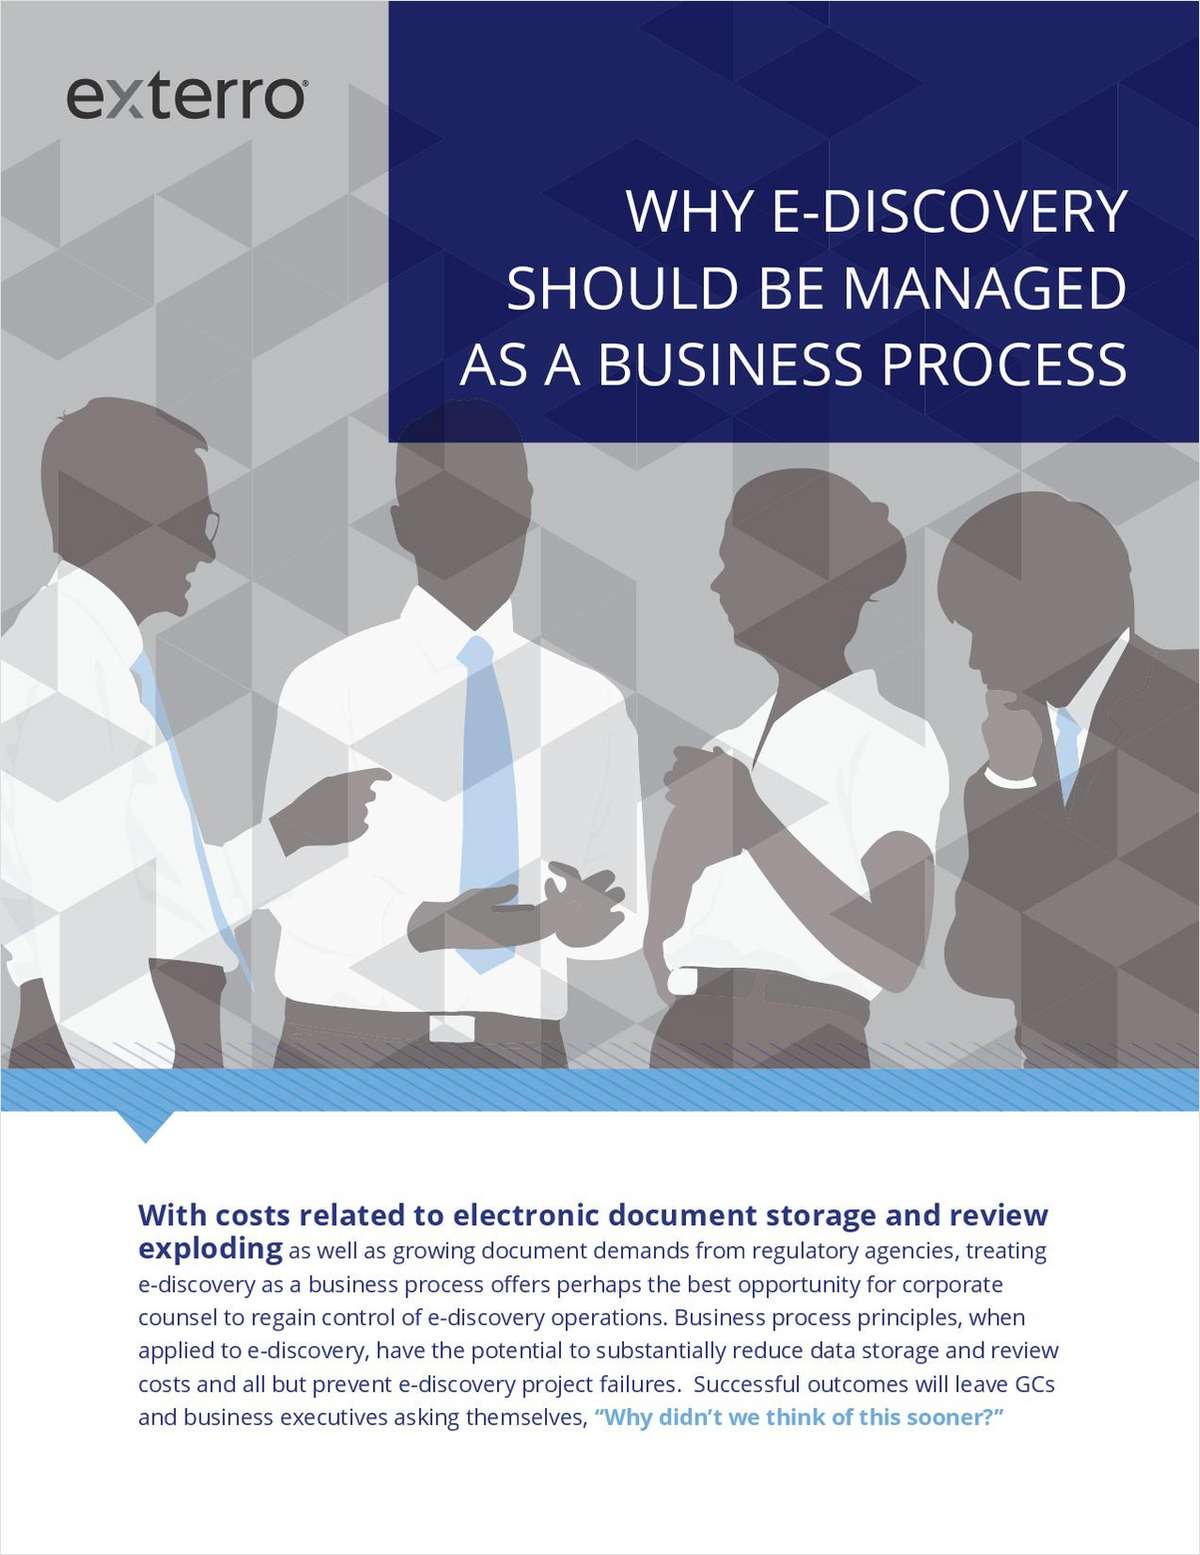 Why E-Discovery Should Be Managed As A Business Process